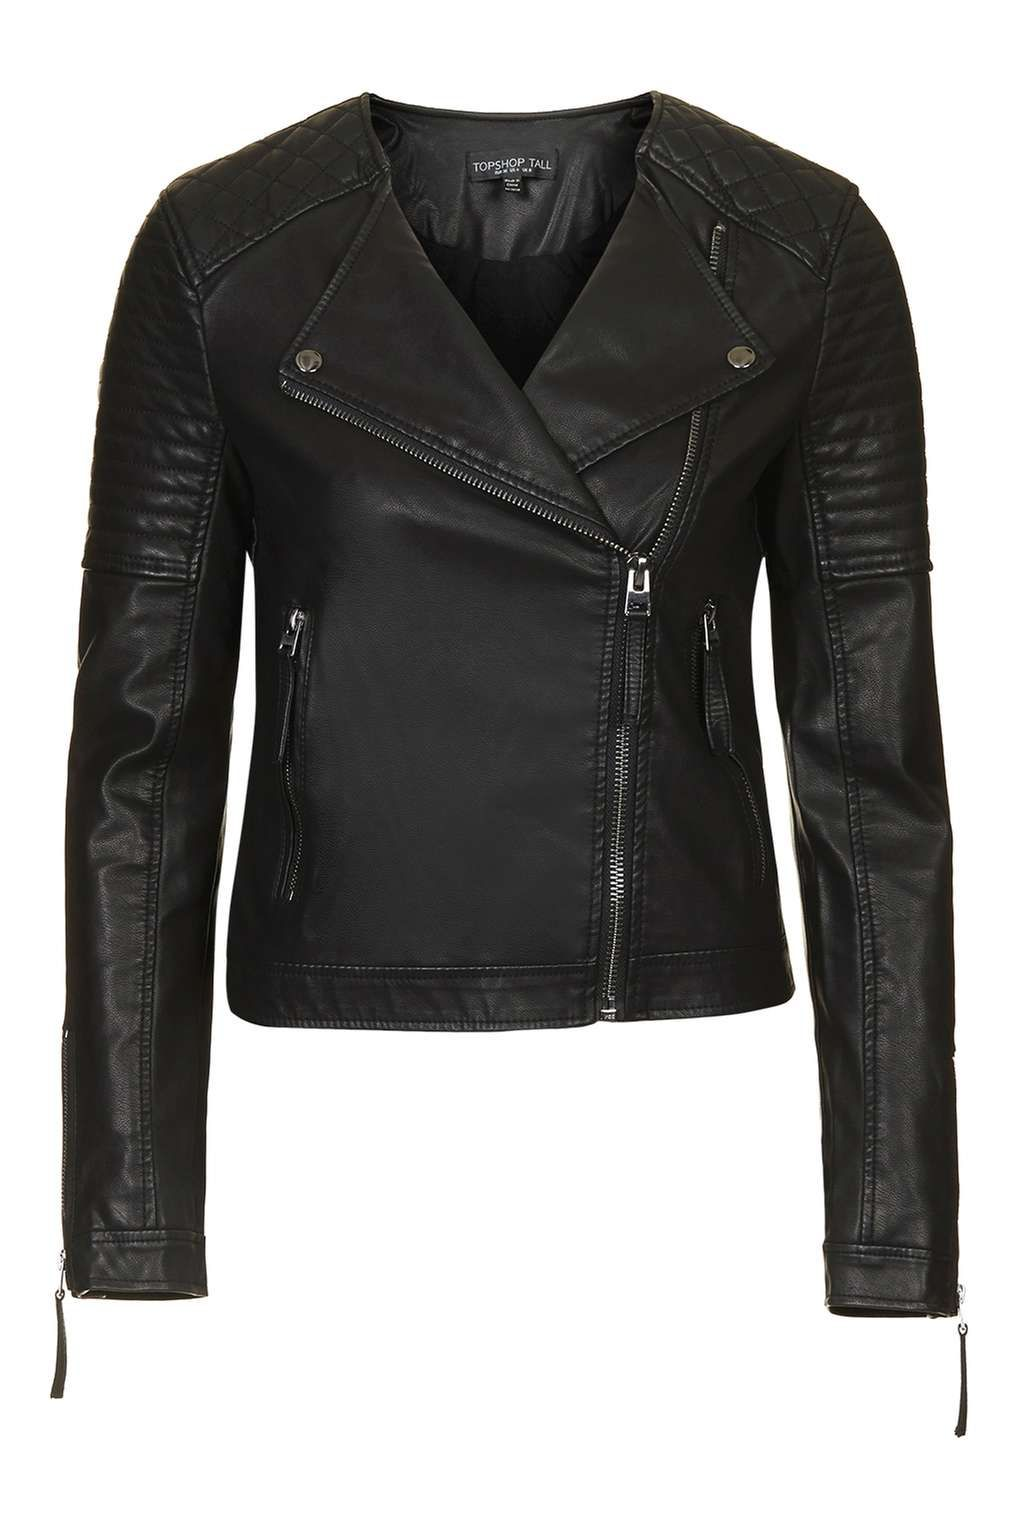 Petite Quilted Faux Leather Biker Jackets Clothing Clothes Vegan Leather Jacket Faux Leather Biker Jacket